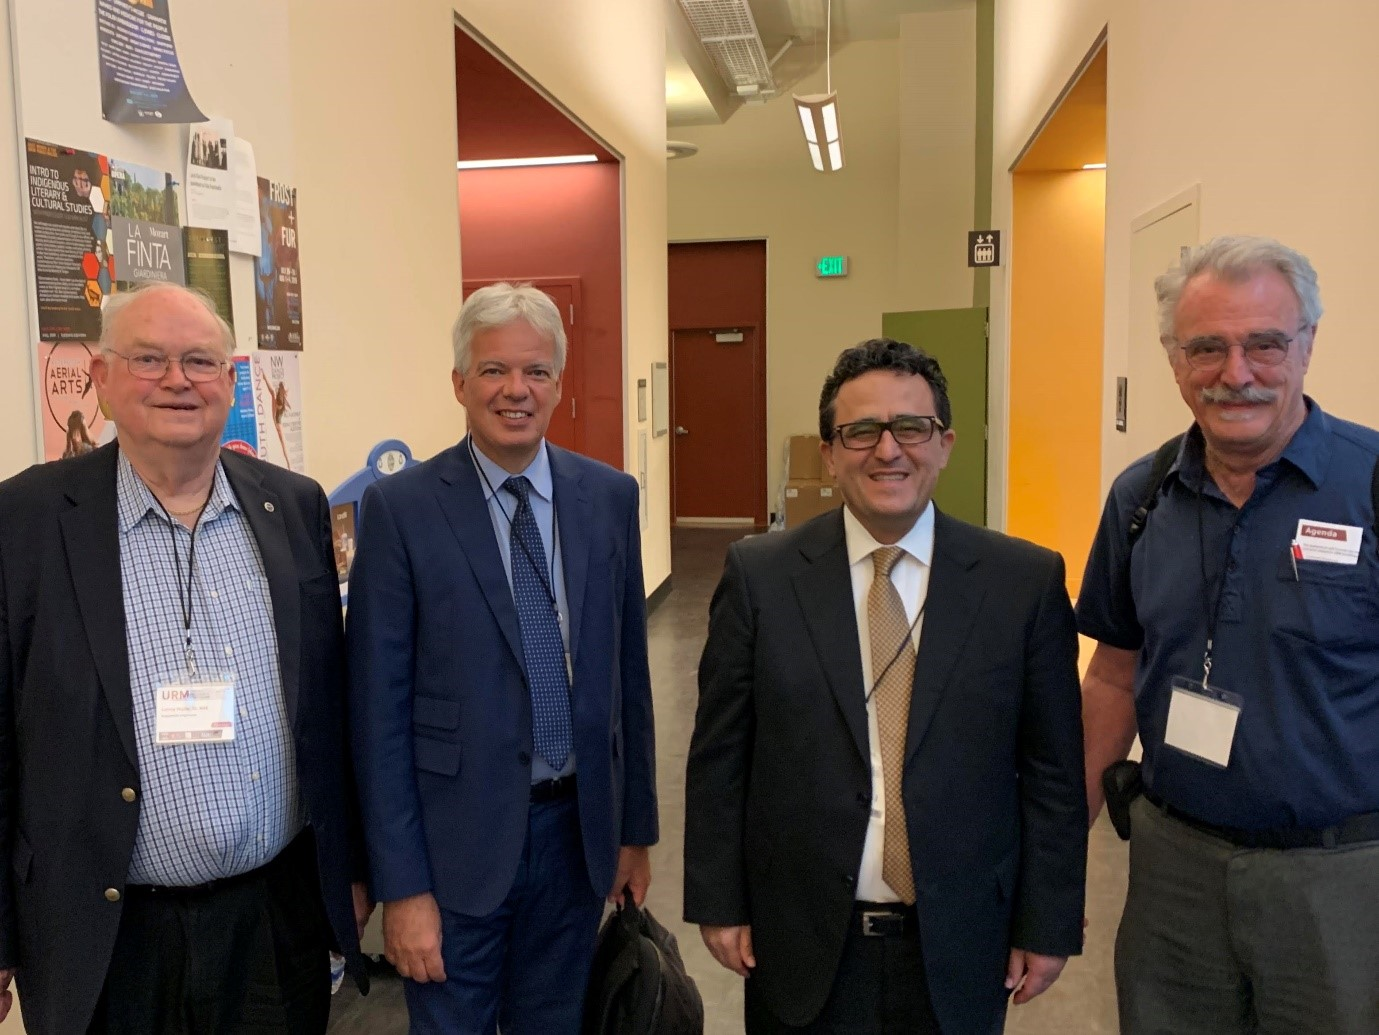 "As a national advocate for safer cities throughout the United States, Optimum Seismic Chief Operating Officer Ali Sahabi participated last month in the American Institute of Architects Oregon's URM Seismic Resilience Symposium. The three-day event, held July 18-20 at Portland State University, featured two days of presentations from prominent engineers and architects from the Oregon, Washington and California, as well as leading experts from Canada, New Zealand and Italy. Day three included a behind-the-scenes tour of recently retrofitted buildings in the downtown Portland area. Topics of discussion included: • The latest research on earthquakes and the effects of seismic motion on buildings • Unreinforced Masonry construction and seismic technology options • Building codes and historic preservation requirements • Seismic upgrade project considerations and costs • Public policy, finance, and resiliency Luca Nassi, principal of the Italian National Fire Brigade, spoke on his experiences with earthquake disaster and resilience efforts through enhanced building safety throughout Italy and abroad. The symposium was organized in collaboration with the International Masonry Institute, American Institute of Architects Oregon, Structural Engineering Association of Oregon, American Society of Civil Engineers, and the Association of Preservation Technology Northwest. ""Seismic safety is a matter of concern, not only in California, but all over the world,"" Sahabi said. ""It's encouraging to see people from as far off as New Zealand and Europe coming together to share ideas and educate themselves about the latest approaches to building safety."" As the voice of Oregon architects, AIA Oregon is the state's chapter of the American Institute of Architects, providing over 1,500 members with practice resources, professional continuing education and advocating for sound public policies that support livable, sustainable communities. .For more information, visit aiaoregon.org."